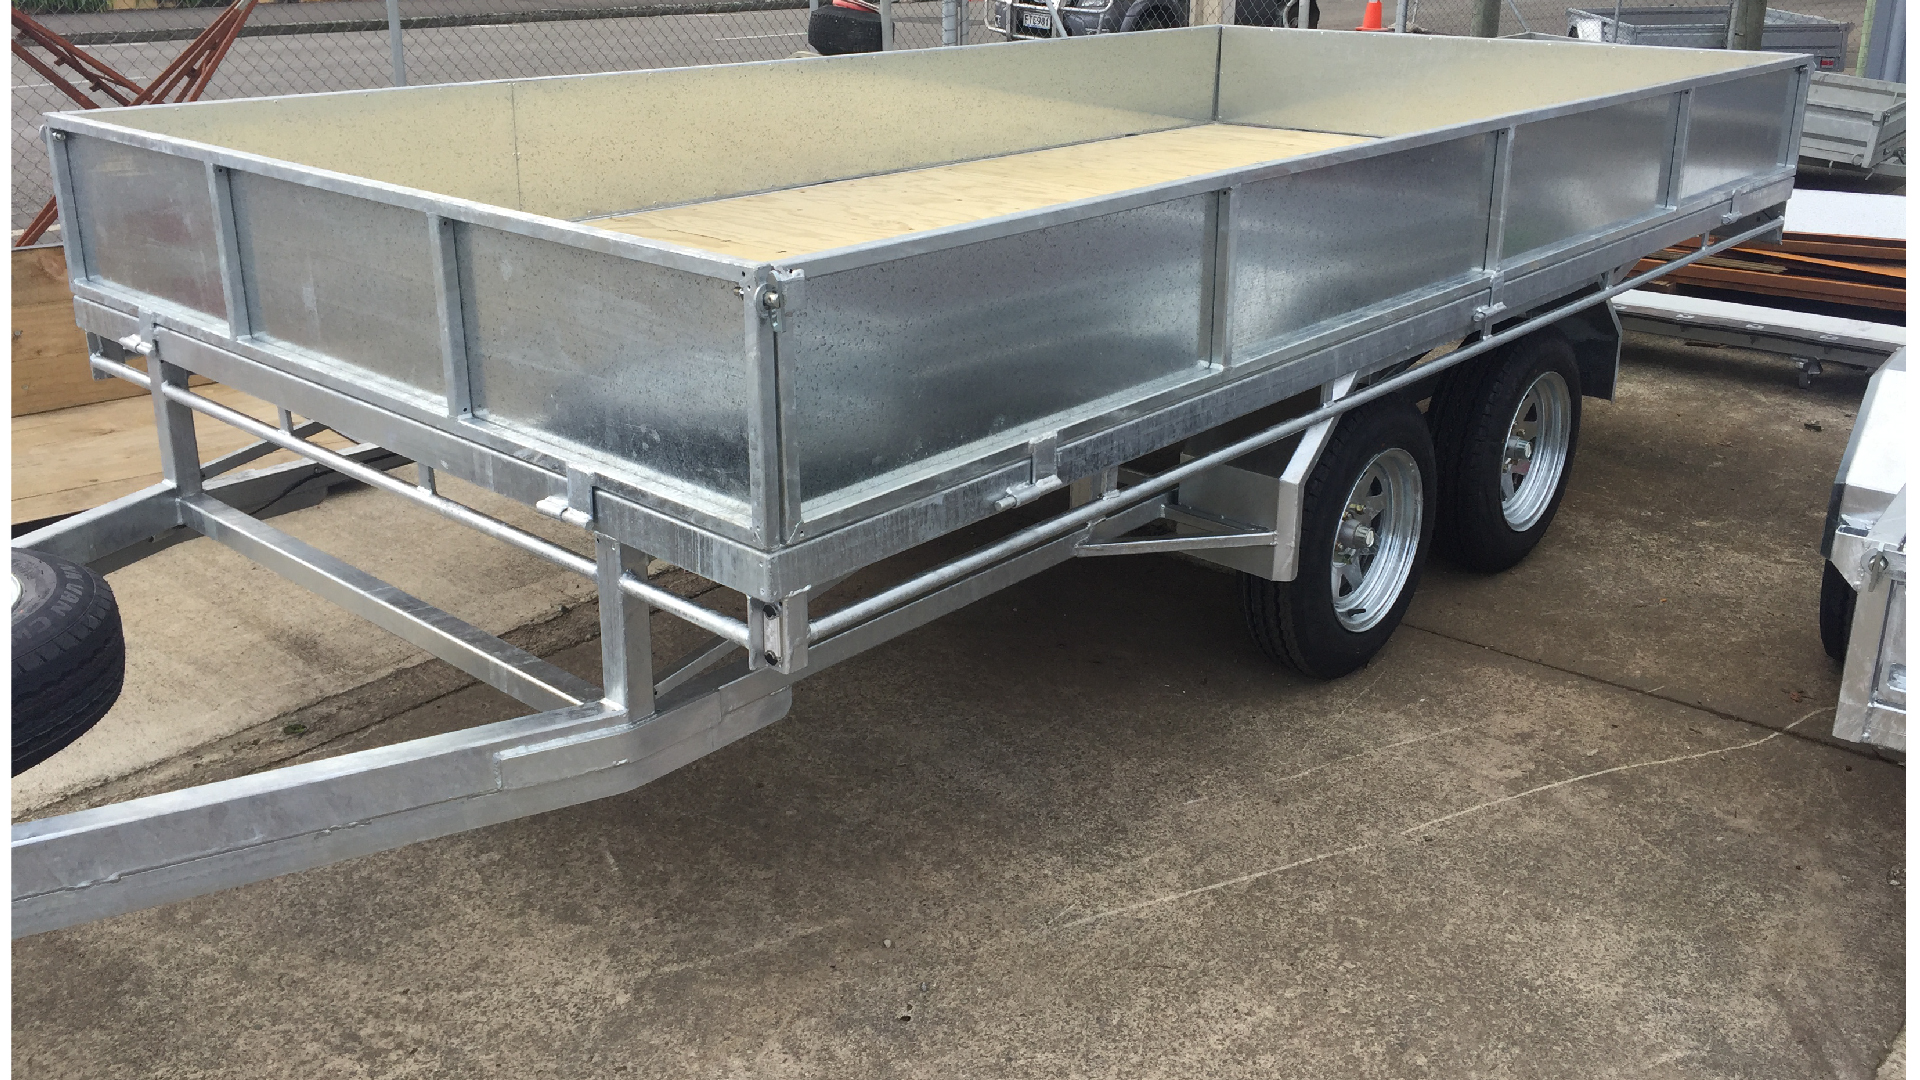 ORION 4m x 2m Flat Deck Trailer